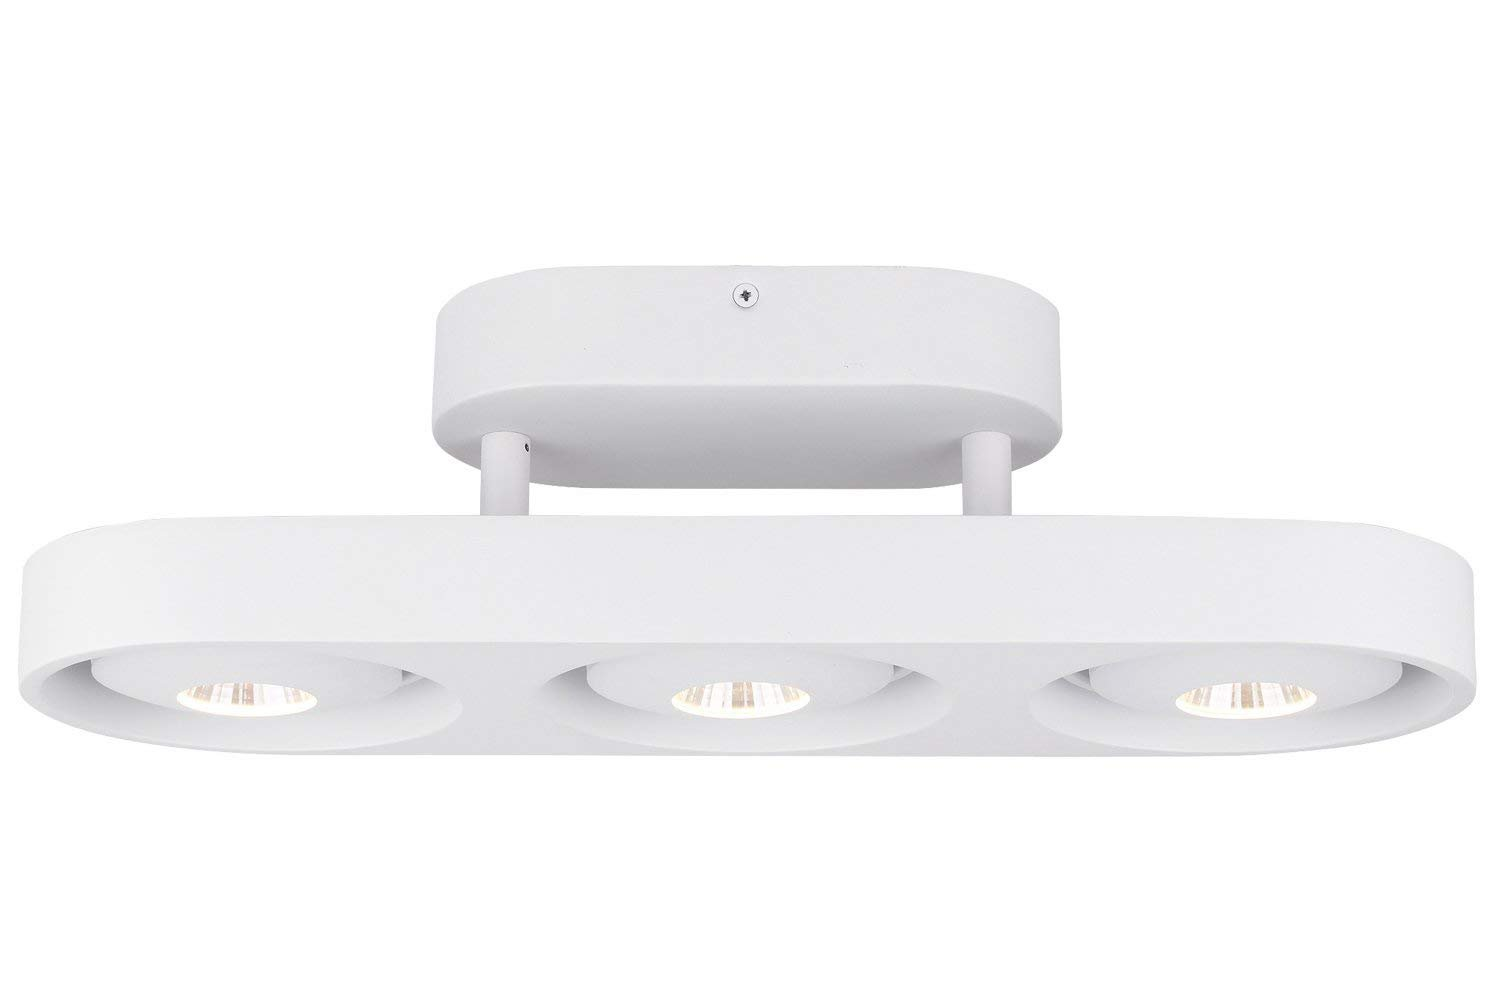 RUNNLY LED Ceiling Light Semi Flush Mount Track Spot Lighting with Cree Chip 3x10W, Dimmable for Kitchen Living Hallway Office Commercial